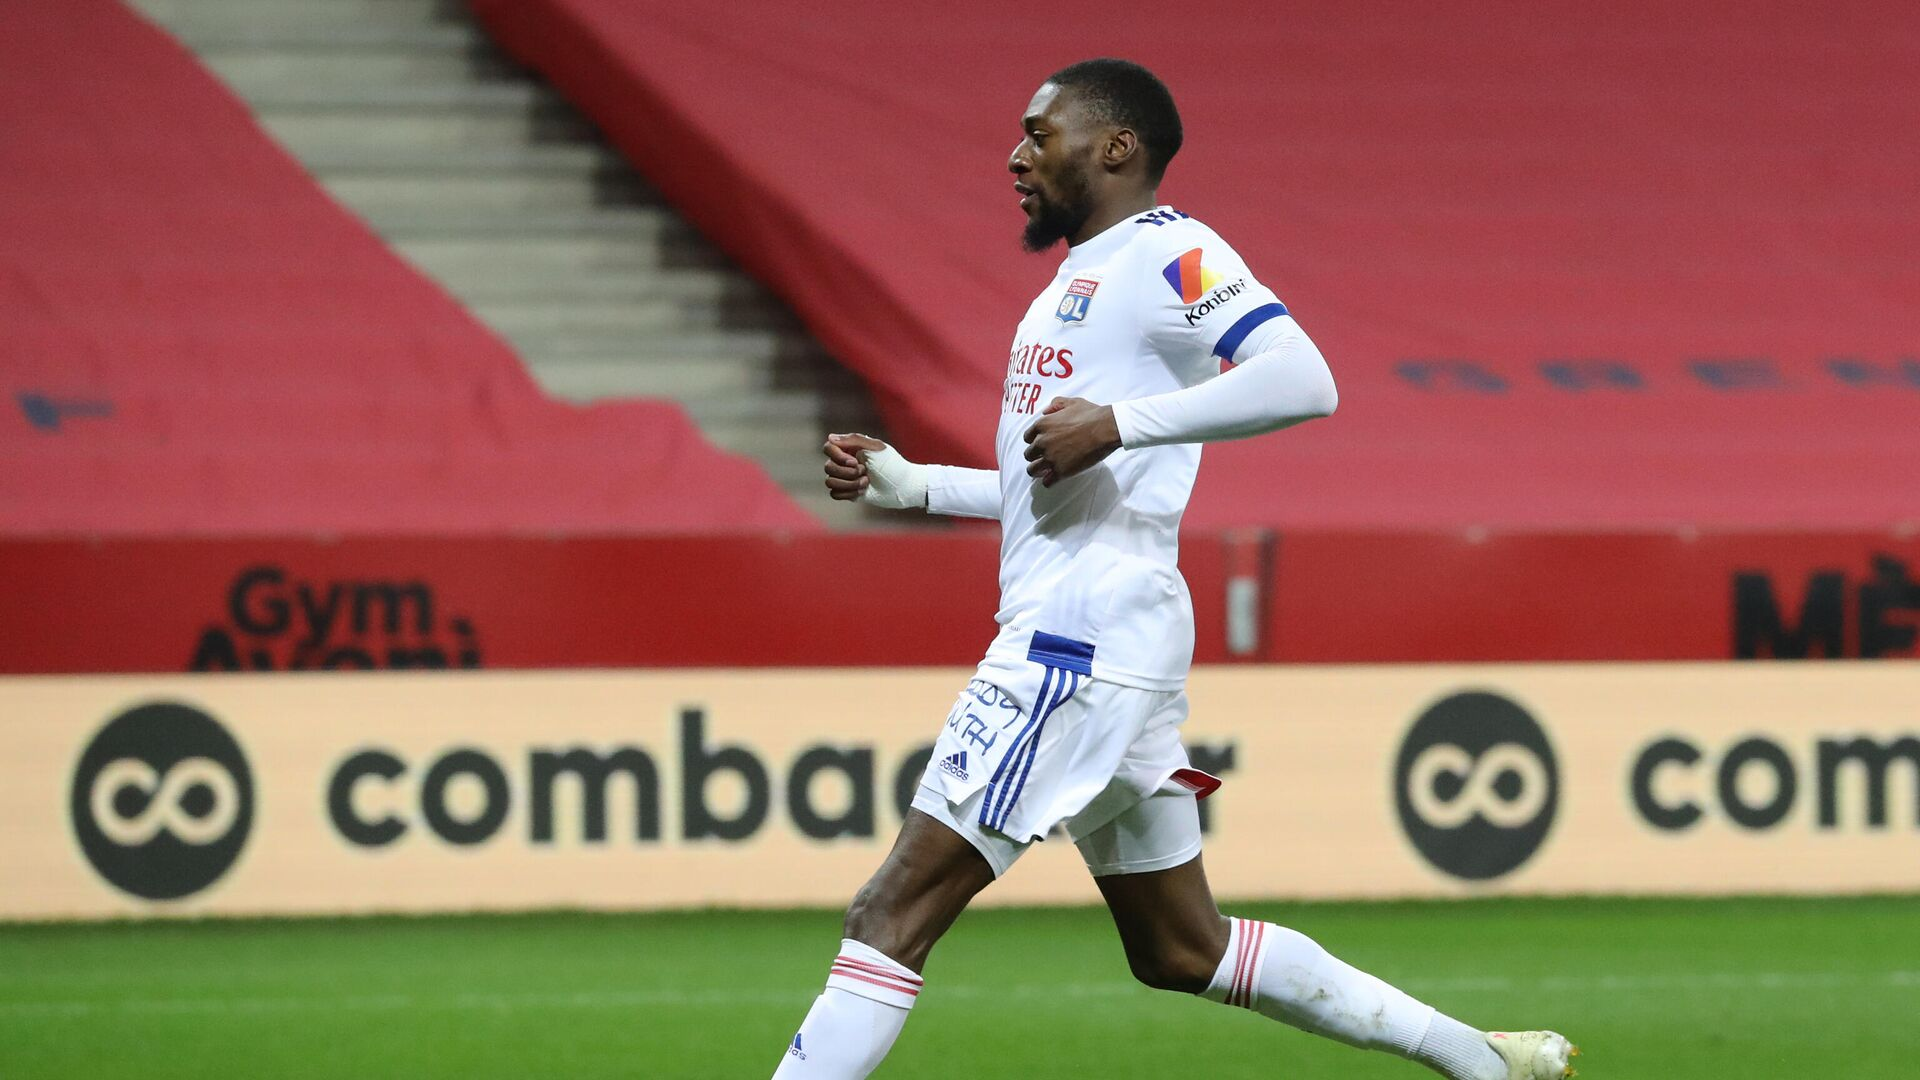 Lyon's Cameroonian forward Karl Toko Ekambi celebrates after scoring a goal during the French L1 football match between OGC Nice and Olympique Lyonnais at the Allianz Riviera stadium in Nice, on December 19, 2020. (Photo by Valery HACHE / AFP) - РИА Новости, 1920, 30.01.2021